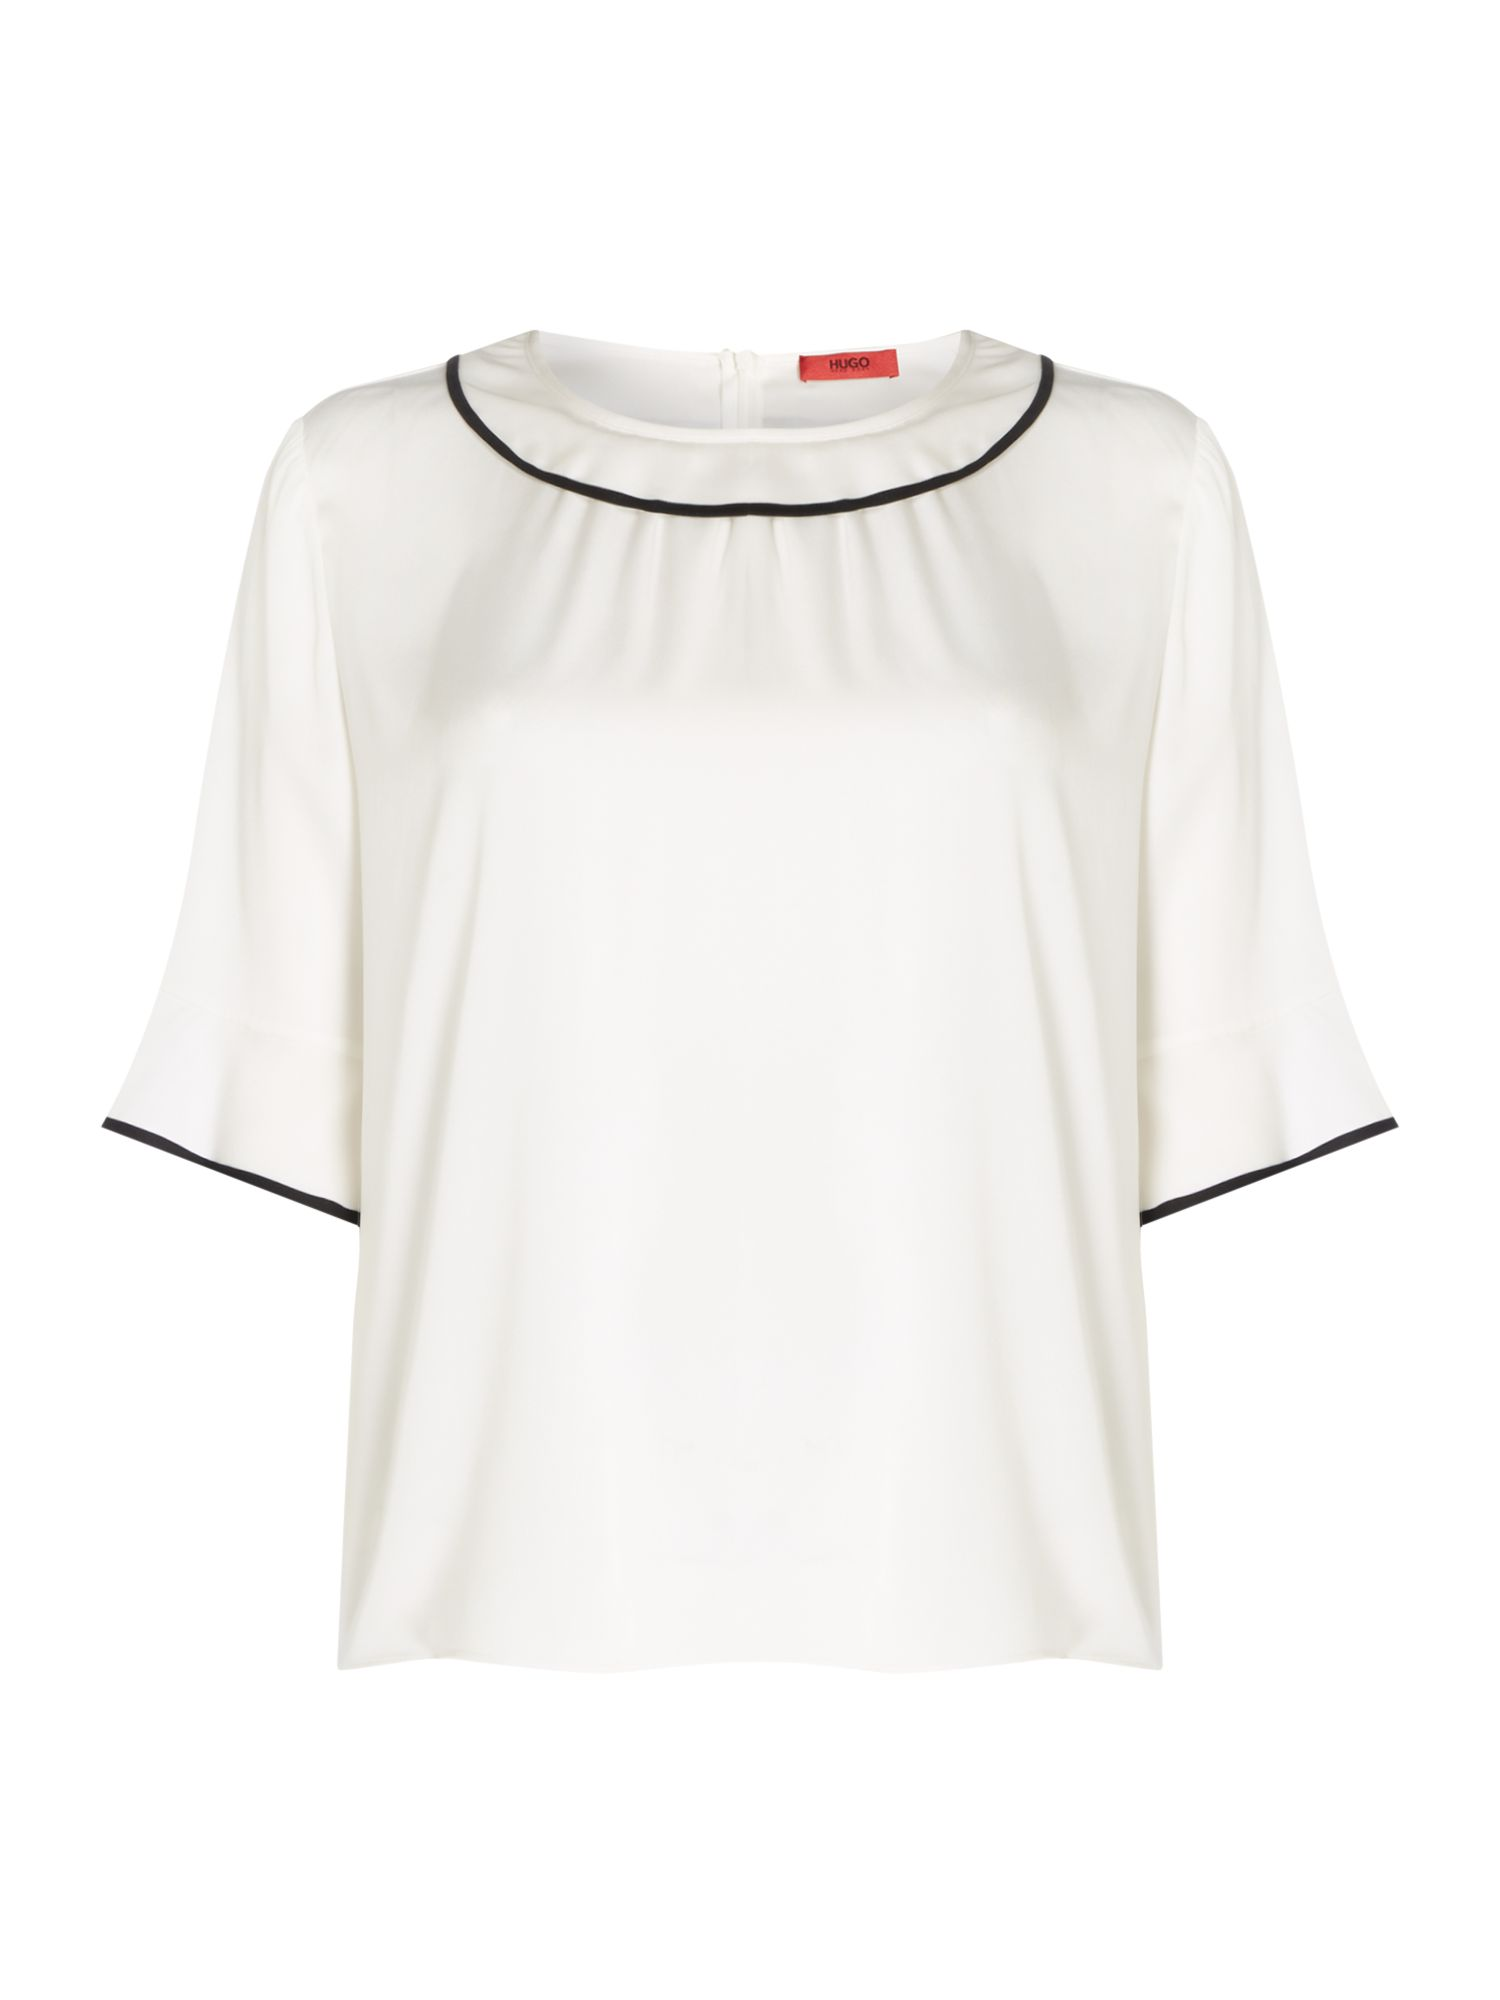 Hugo Cerra short sleeve ruffle blouse, White